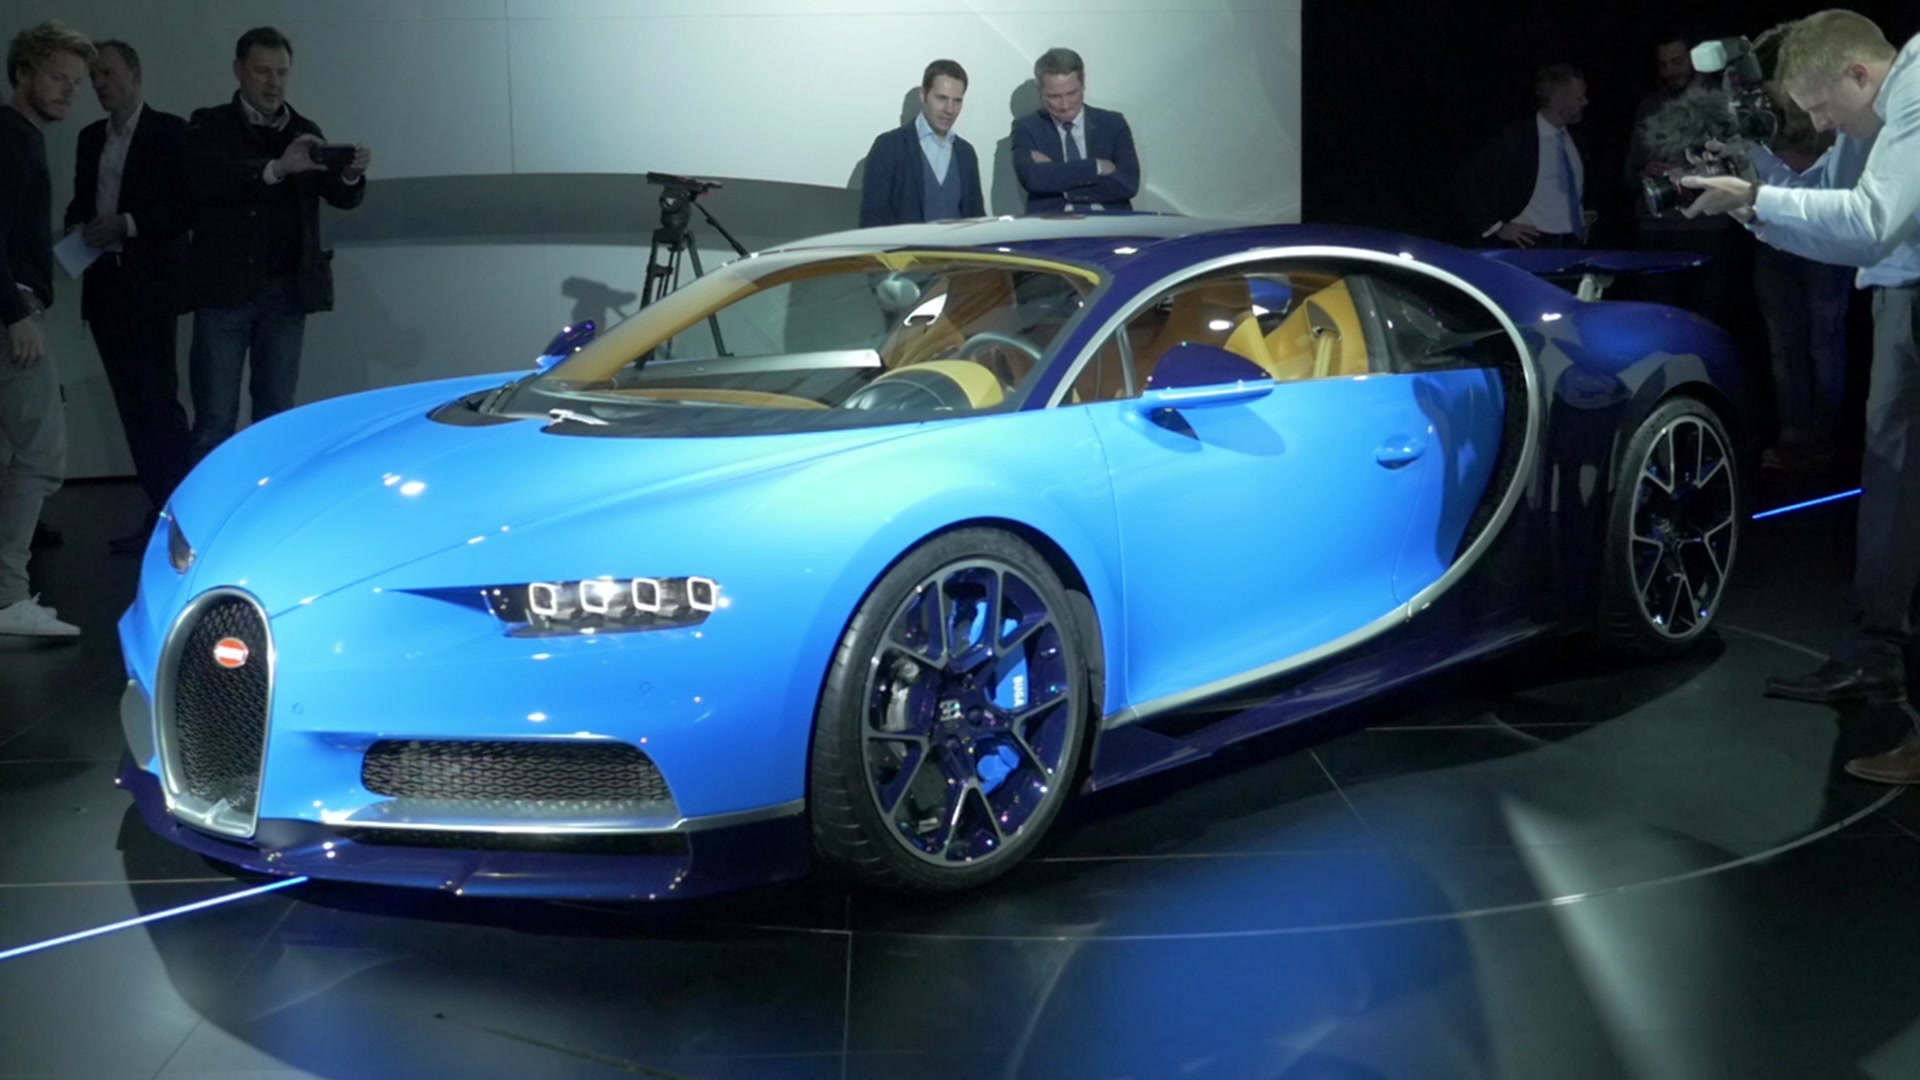 hight resolution of lego builds life size driving bugatti chiron out of technic pieces